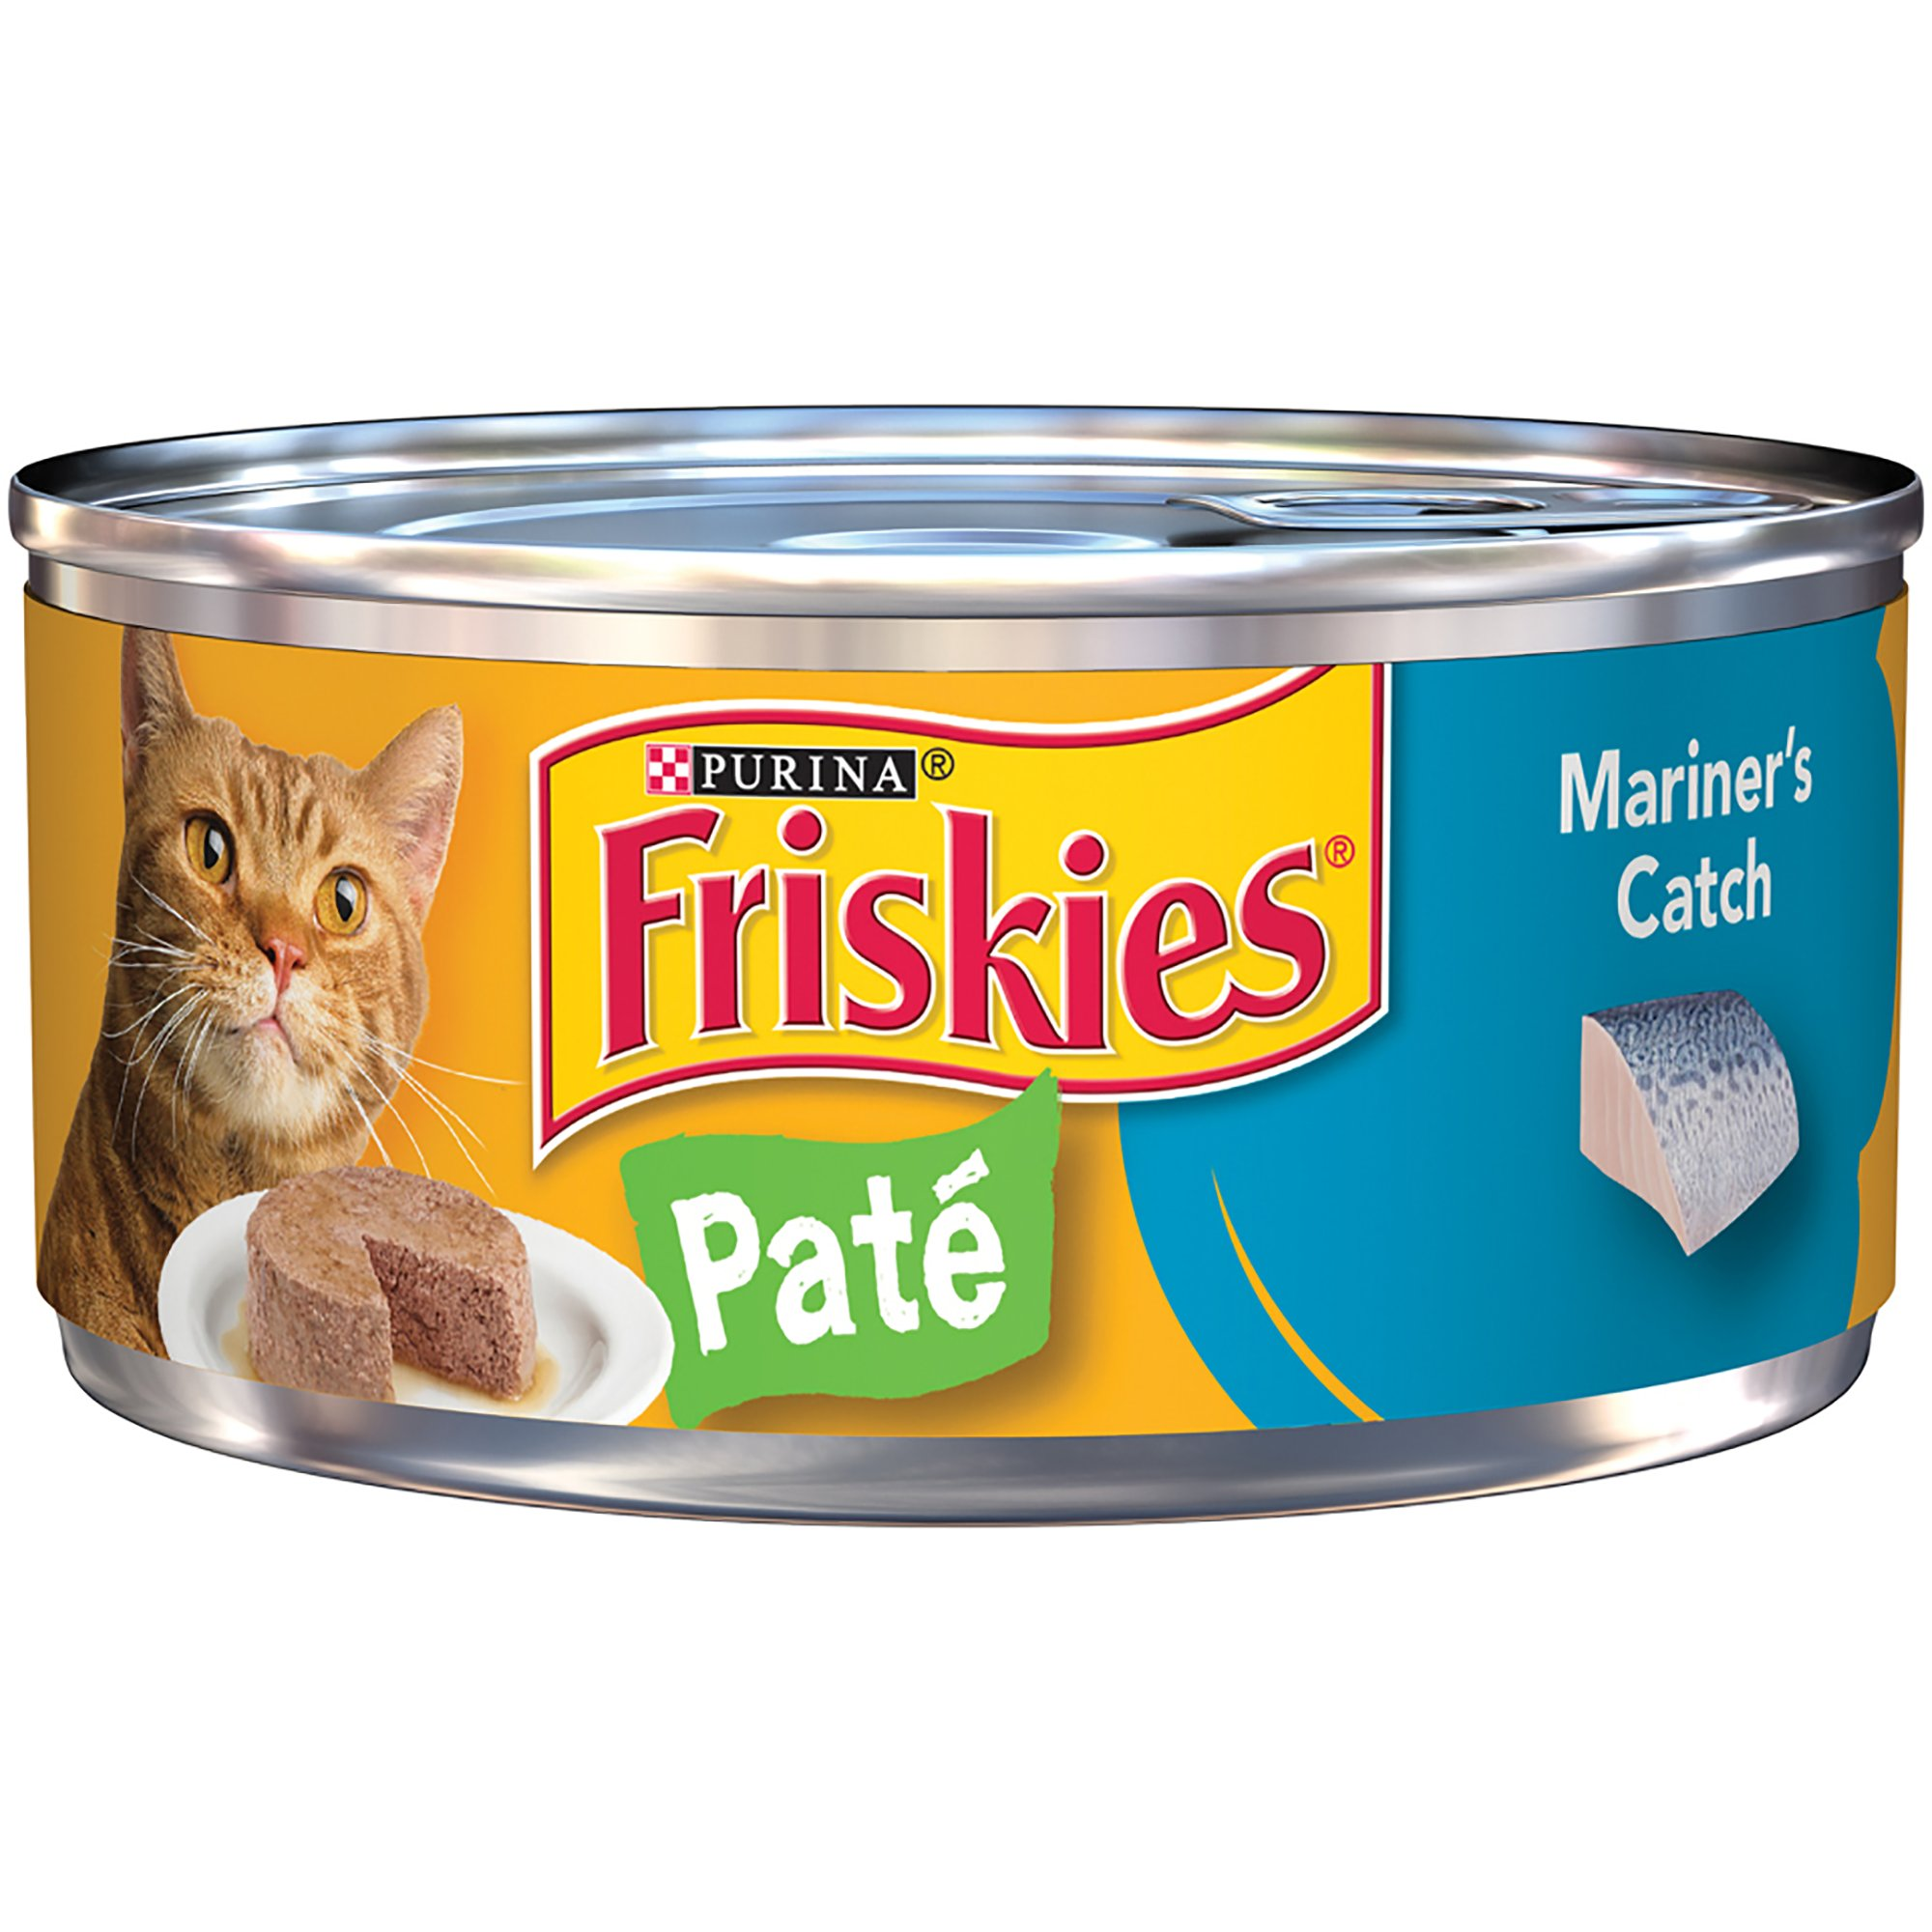 Friskies Mariner's Catch Fish Canned Cat Food